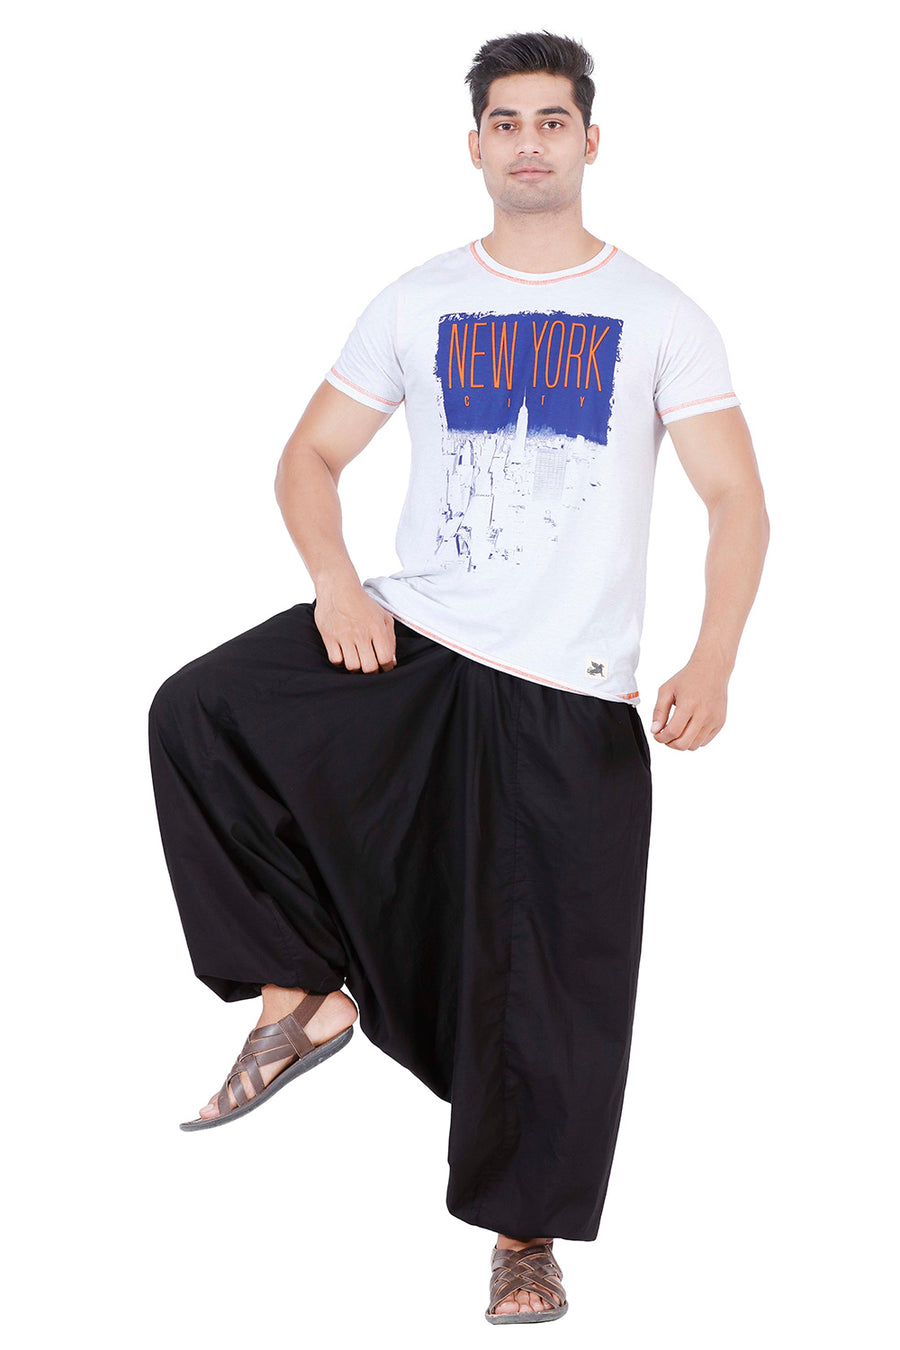 Harem Pants, Black Harem Pants, Wide Leg Pants, Show me Hippie Pants, Show me some Mens Harem Pants, Show me some Womens Harem Pants, What is a harem pant, Show me some baggy pants, I want to buy harem pants, cool harem pants, Wide leg harem Pants, Cheap Harem Pants, Show me best harem pants, Highly rated Harem Pants, Sarouel, Haremshose, Afgani Pants, One Size Fits All Pants,Show me  XXXL Pants , Hippie Pants, Genie Pants , Boho Pants, Genie Clothes